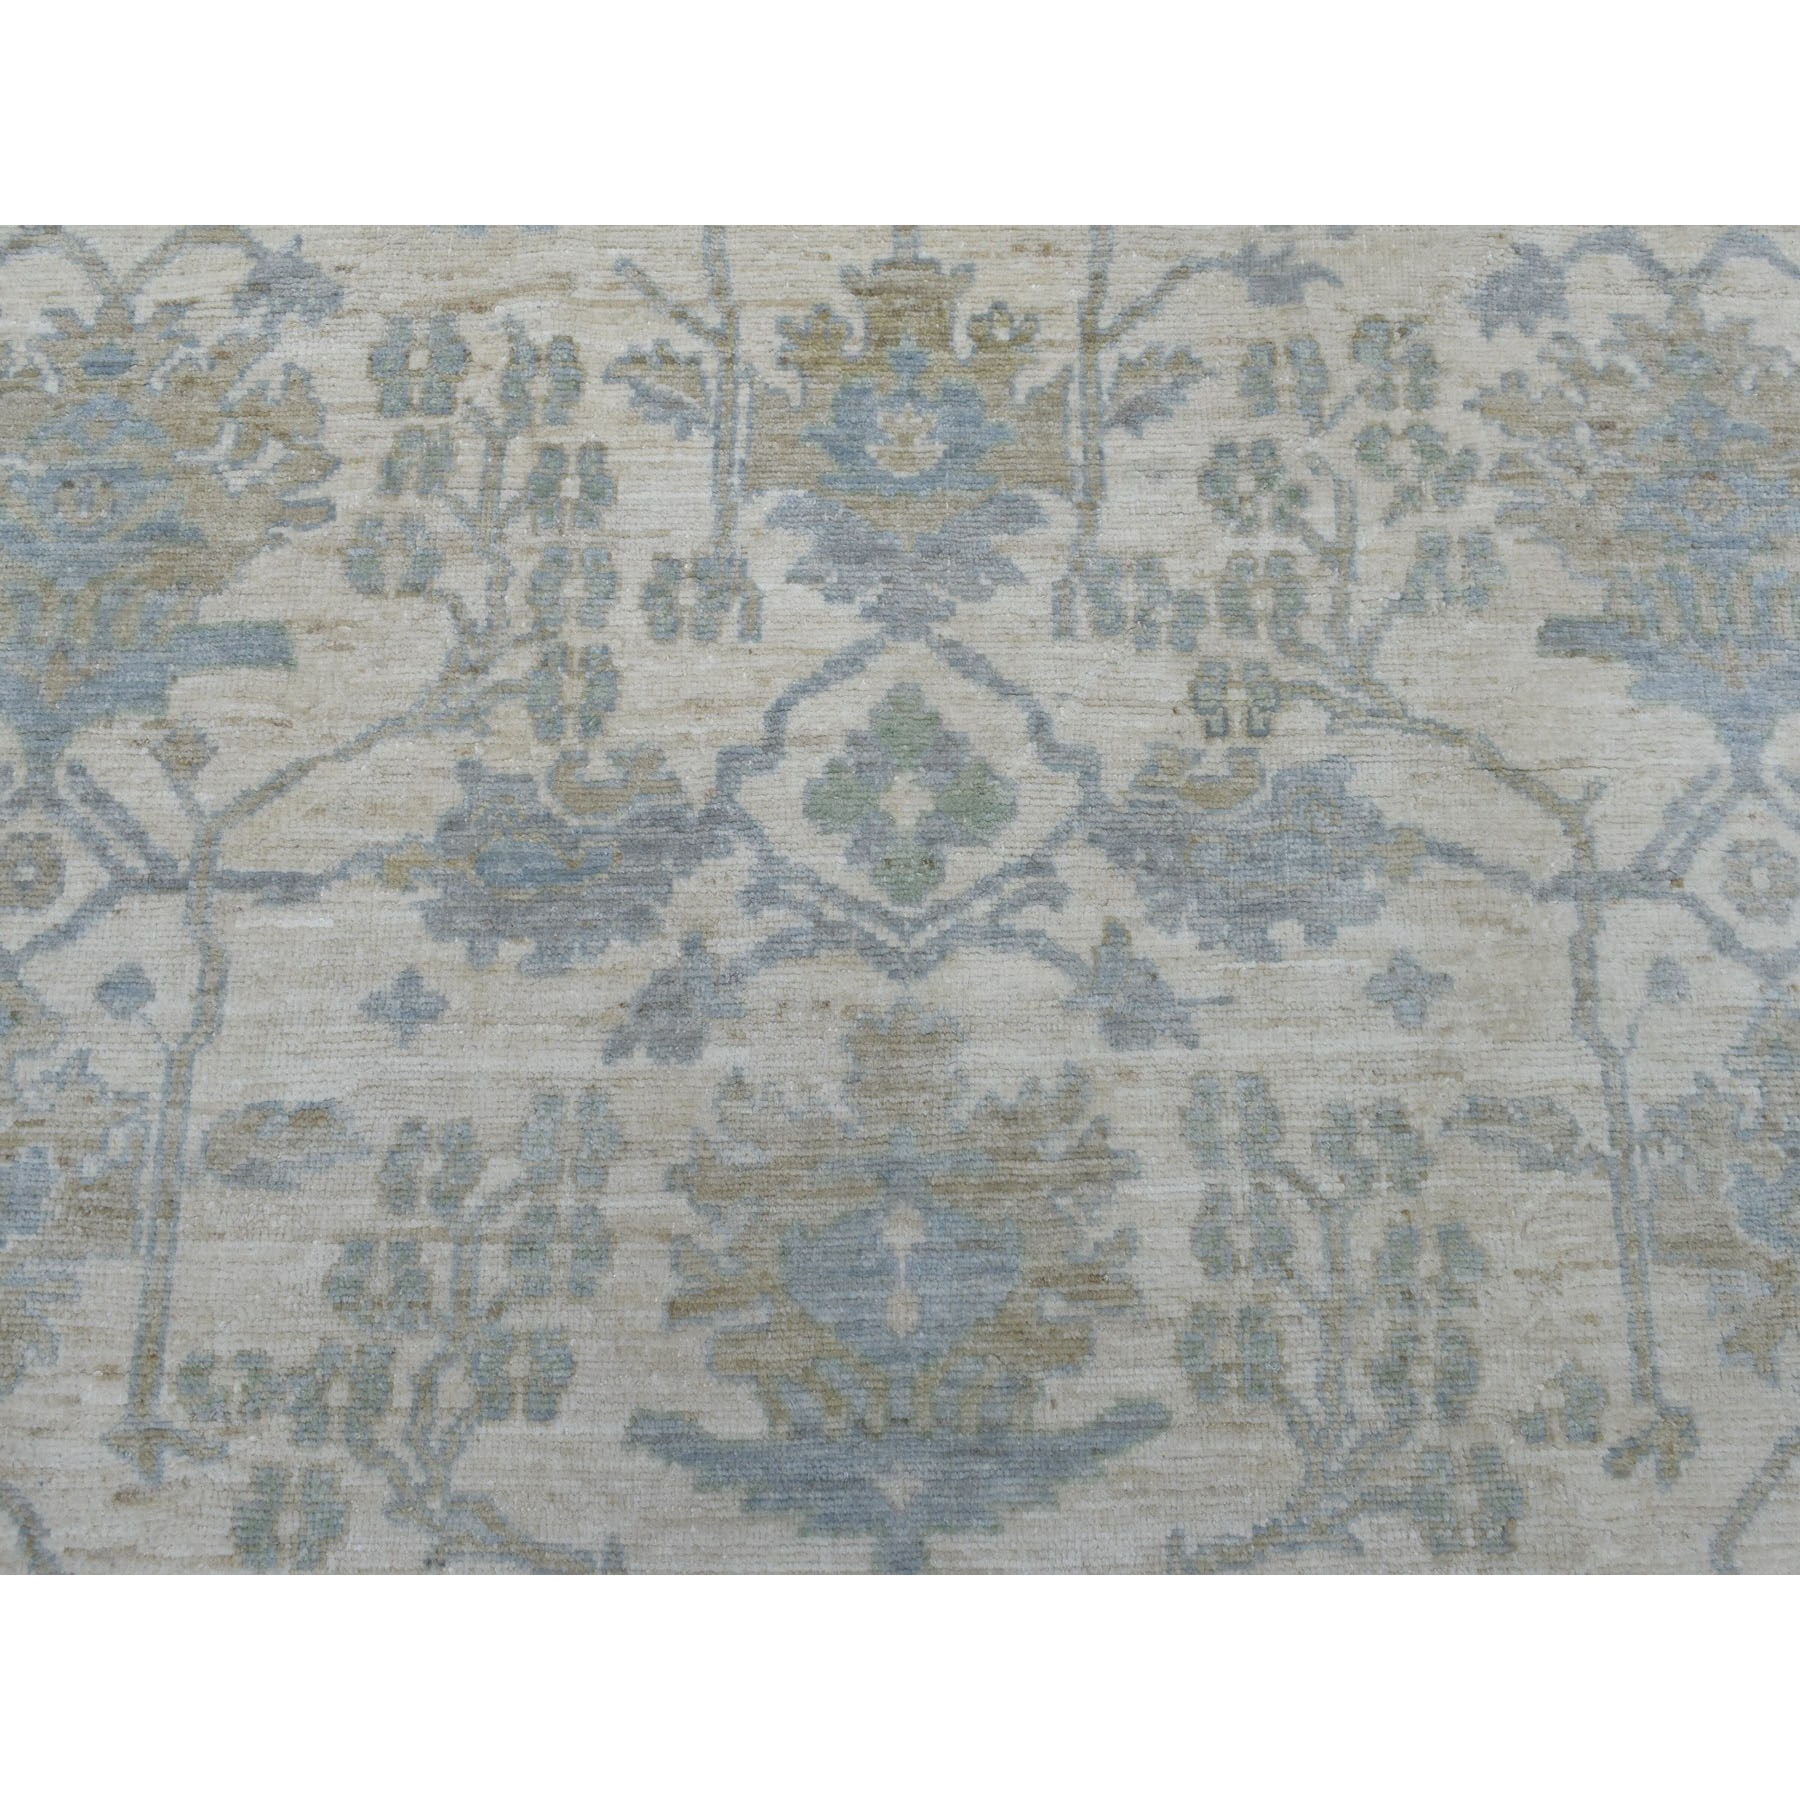 "7'10""x9'7"" Ivory Angora Oushak With Floral Motifs Pure Wool Hand Woven Oriental Rug"